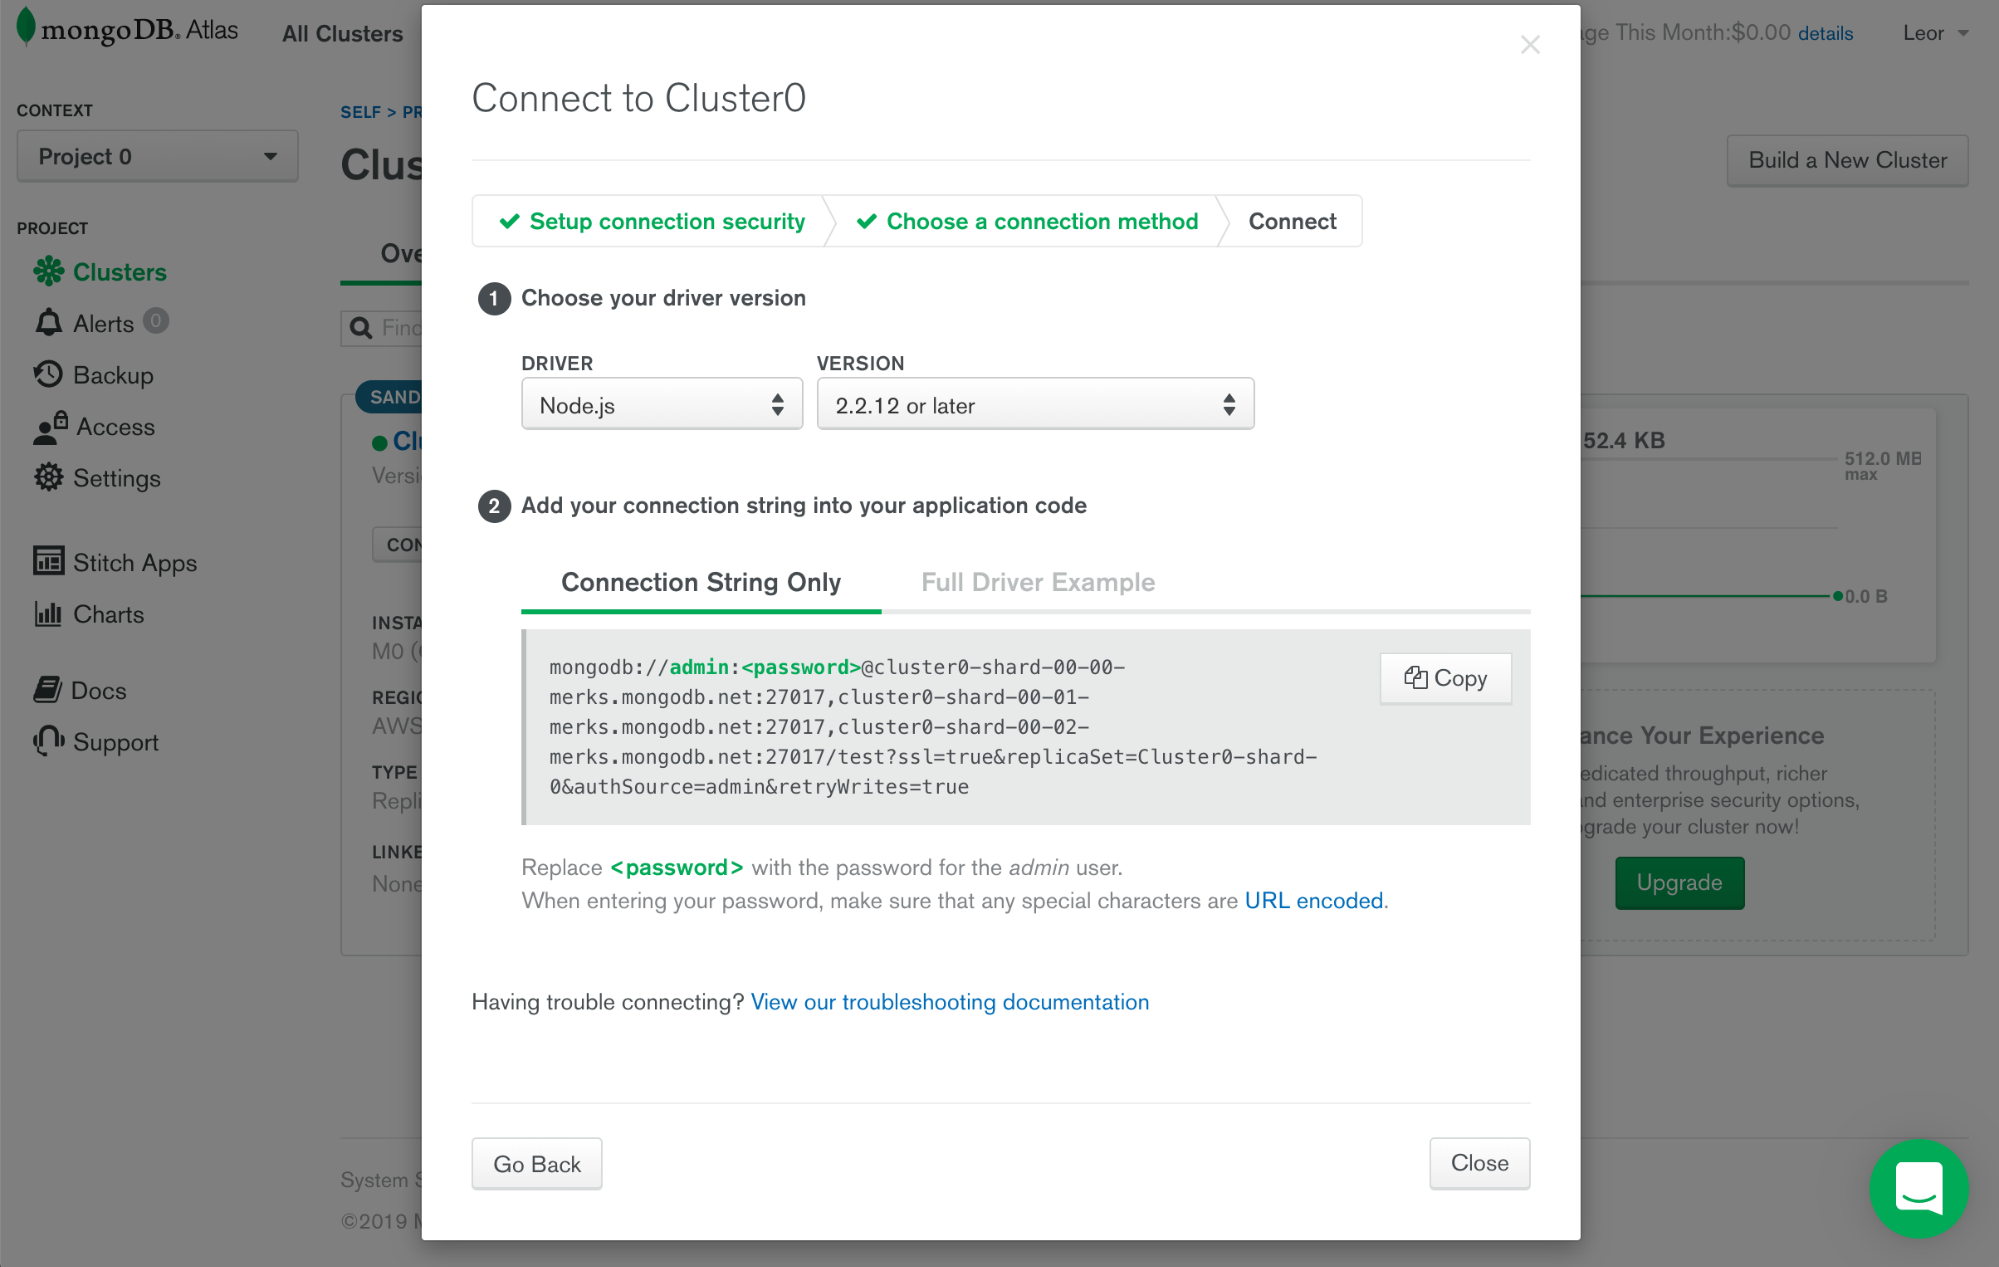 Retrieve the connection string for my MongoDB Atlas managed instance